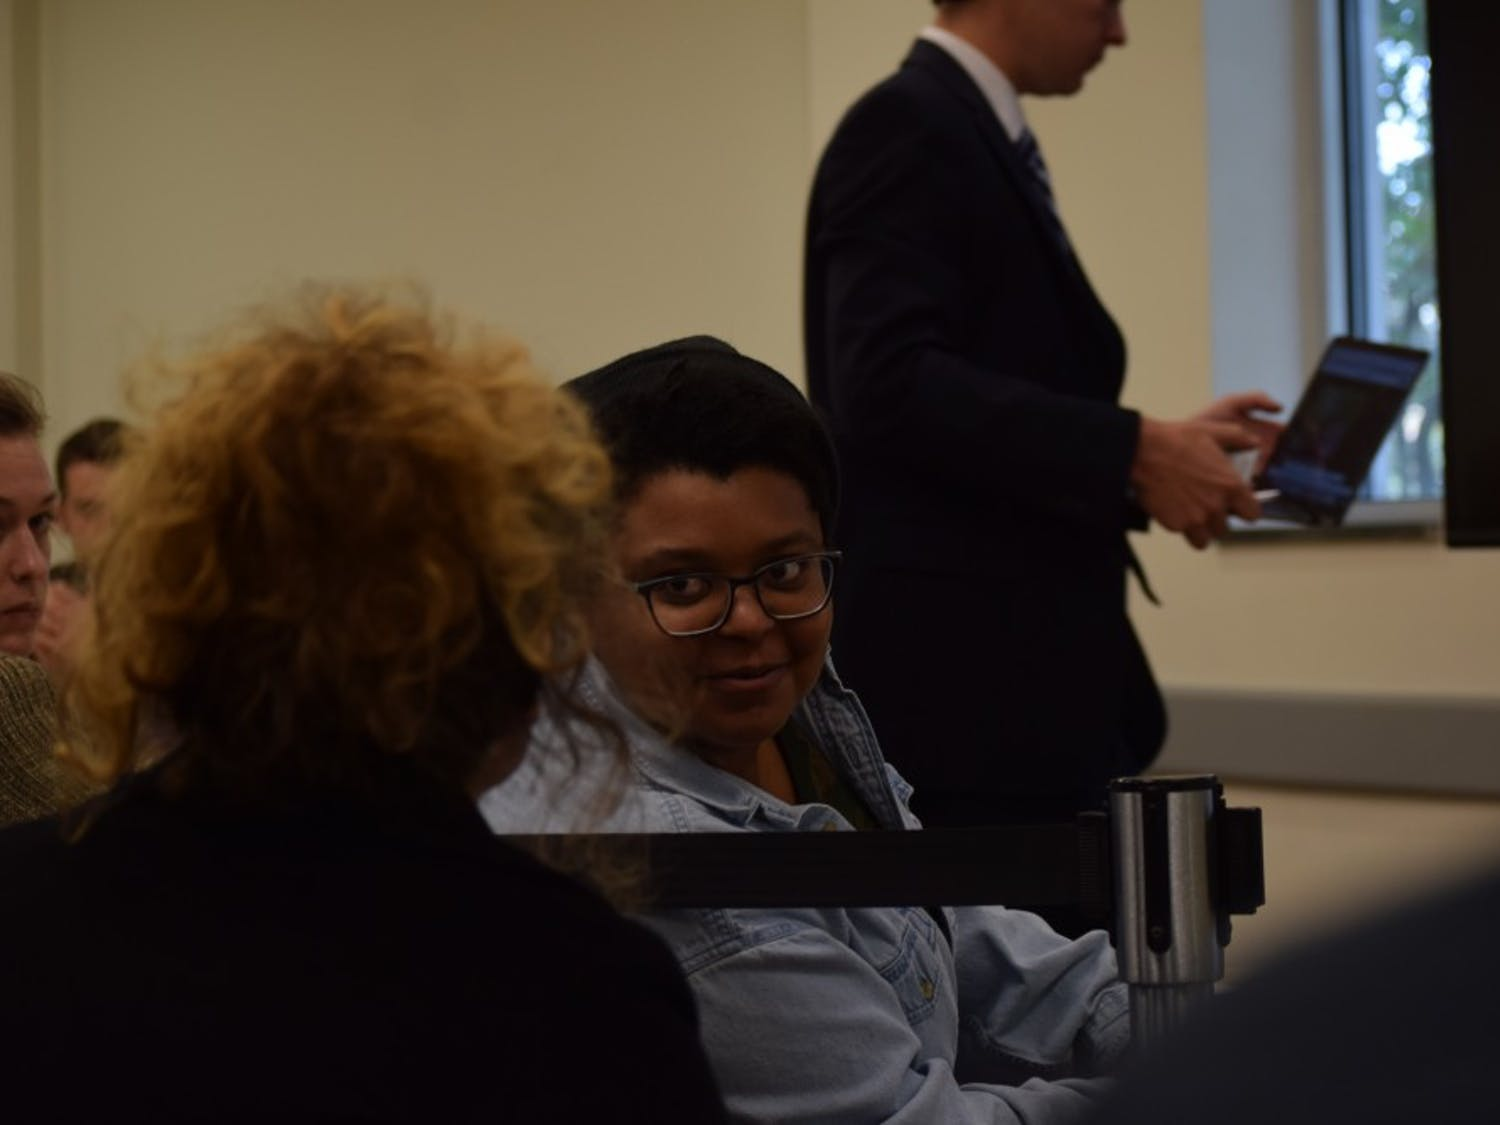 Maya Little pleaded not guilty to her charge of violating the honor code at her honor court hearing at the UNC Student Union on Thursday, Oct. 25, 2018.